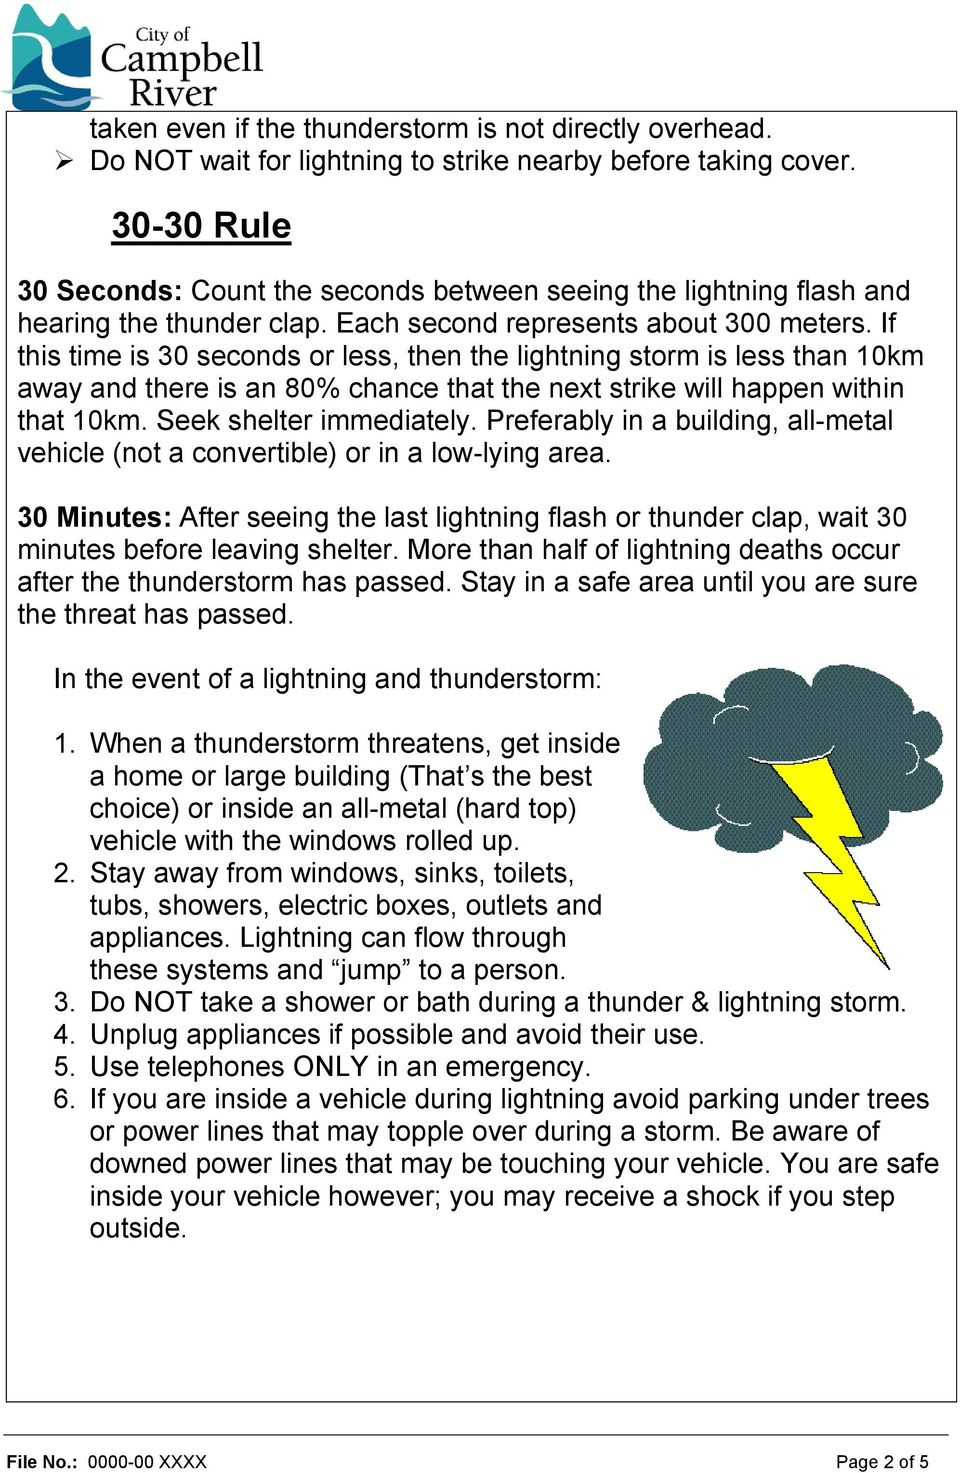 If this time is 30 seconds or less, then the lightning storm is less than 10km away and there is an 80% chance that the next strike will happen within that 10km. Seek shelter immediately.